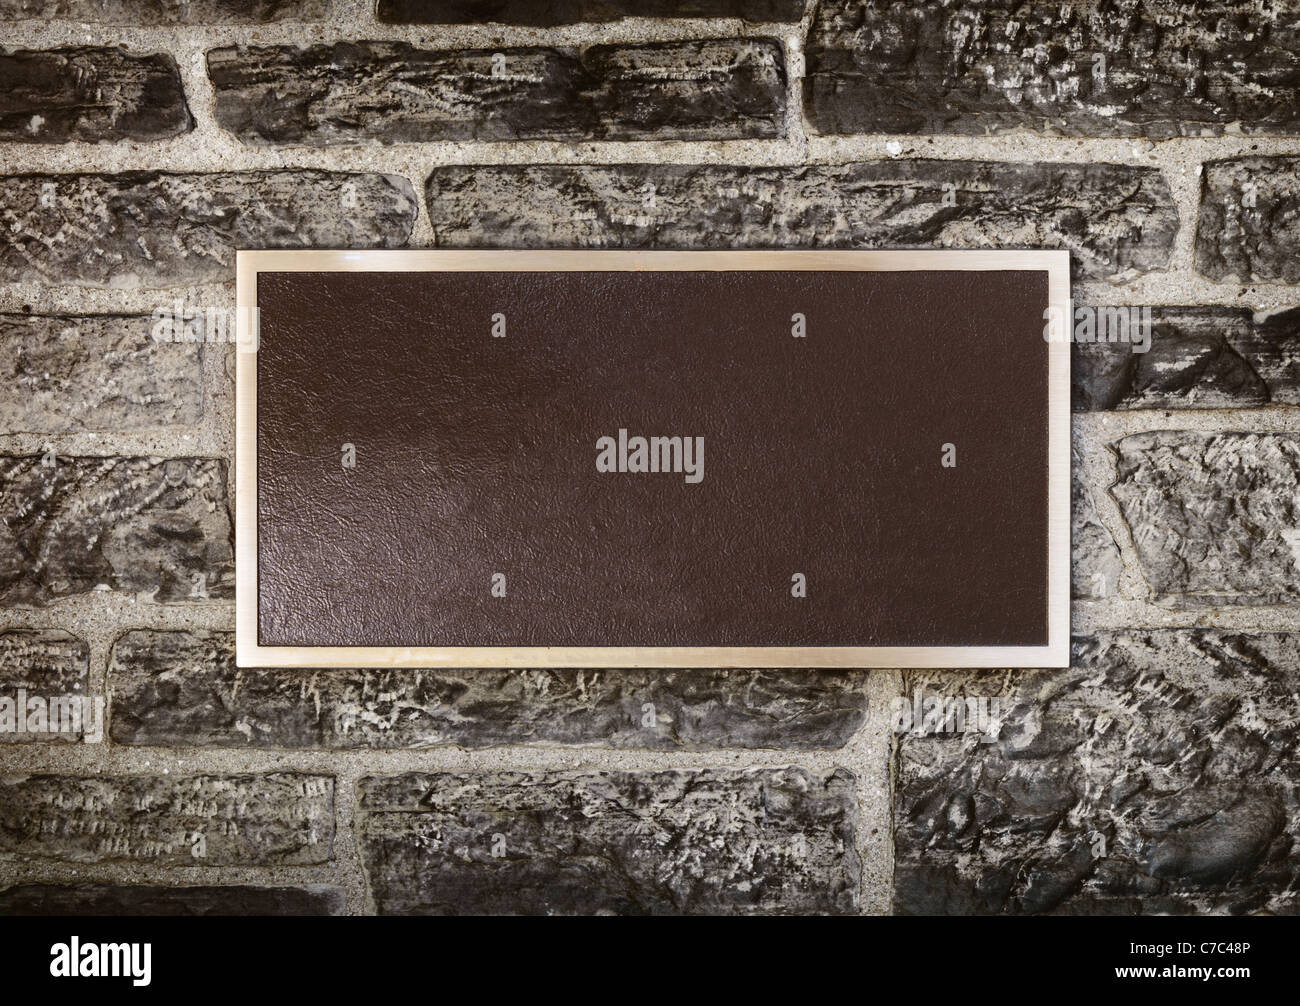 Blank sign in shiny metal frame on a stone wall - Stock Image